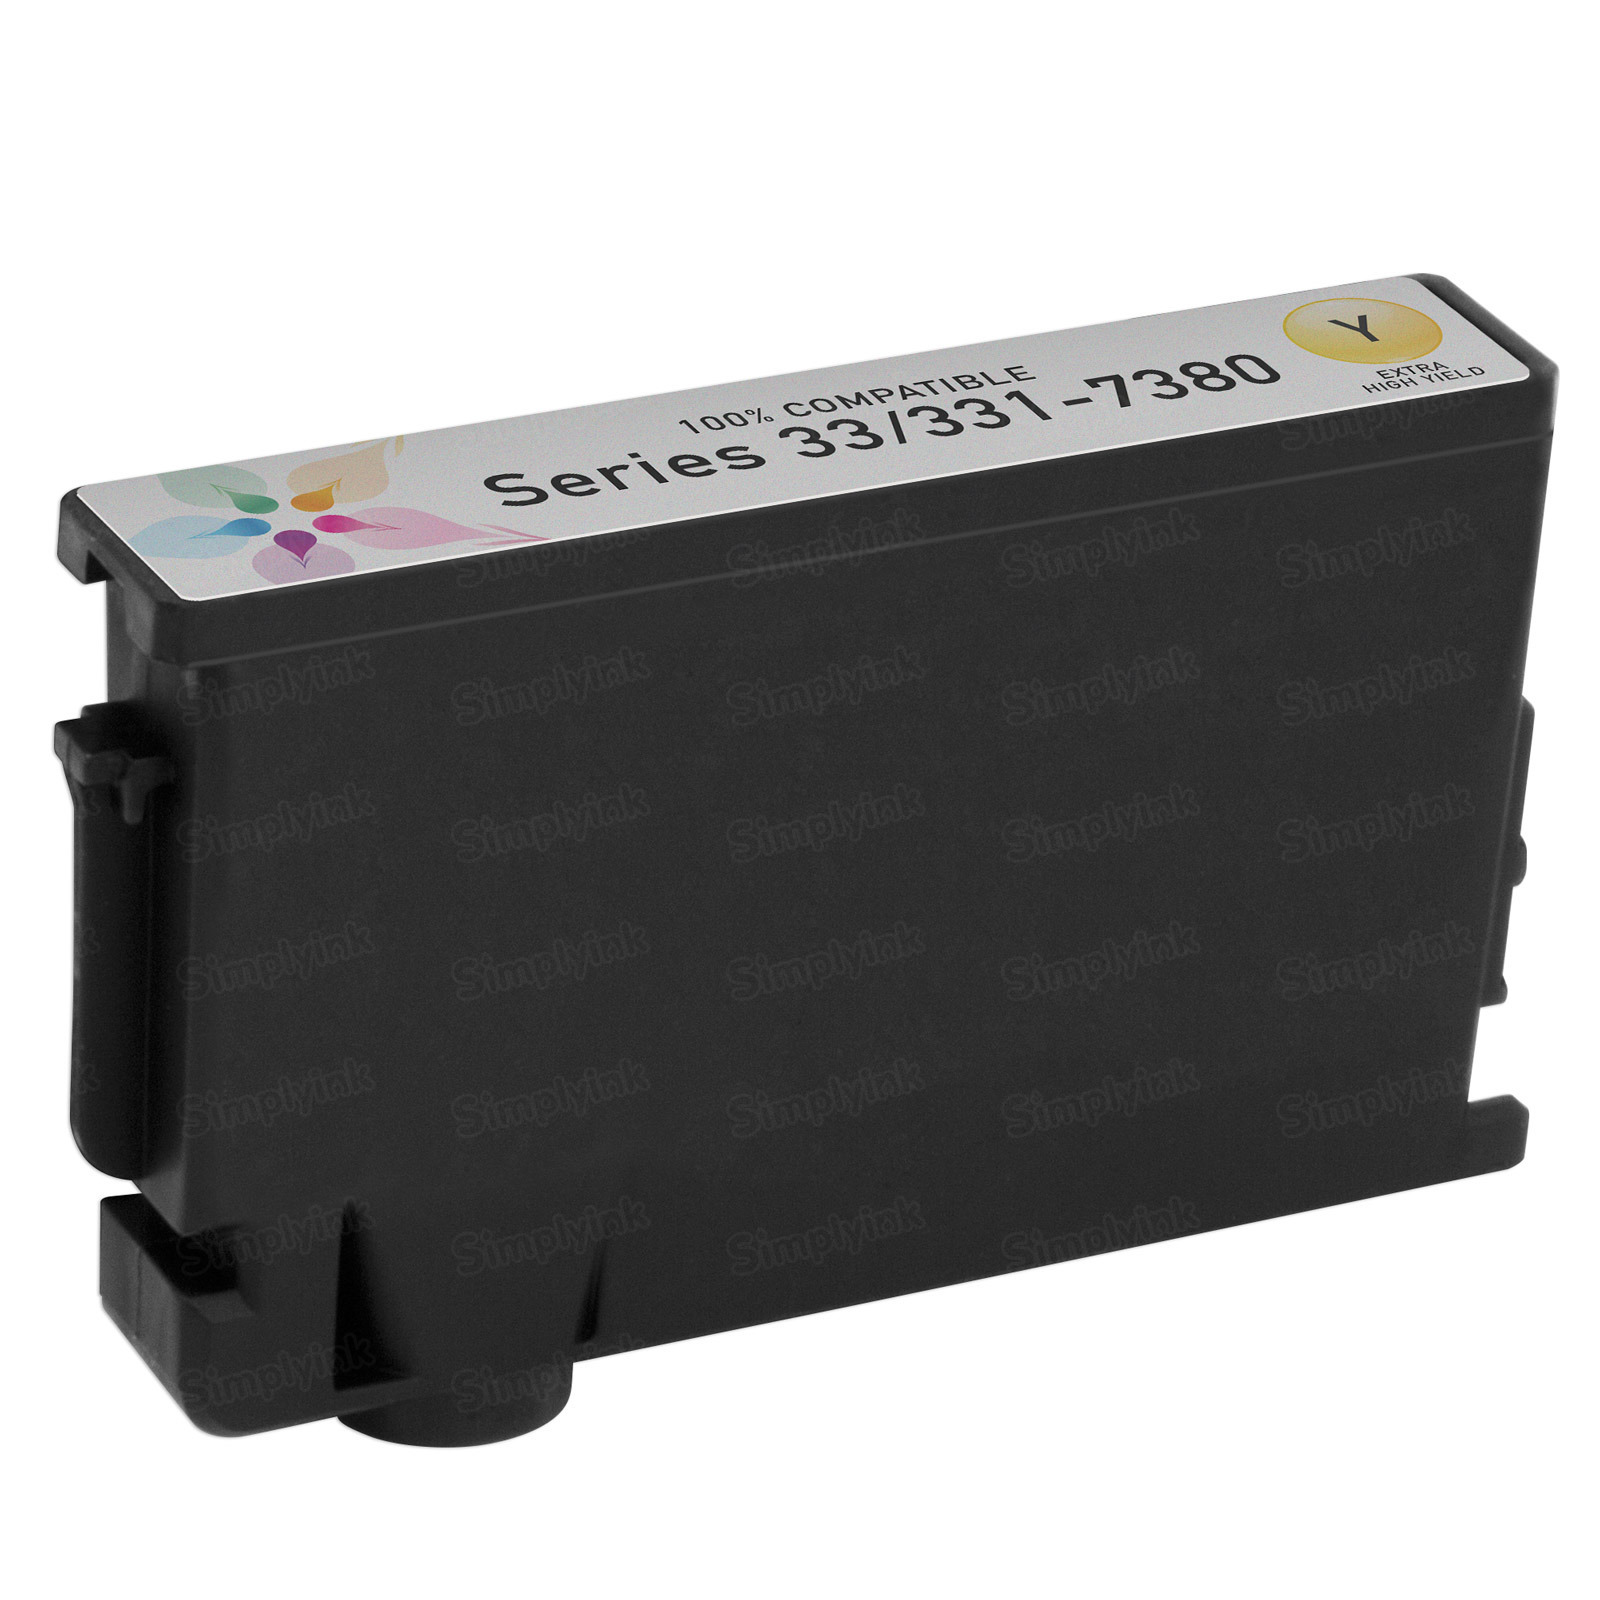 Compatible Ink Cartridge for Dell 331-7380 Extra HY Yellow Series 33